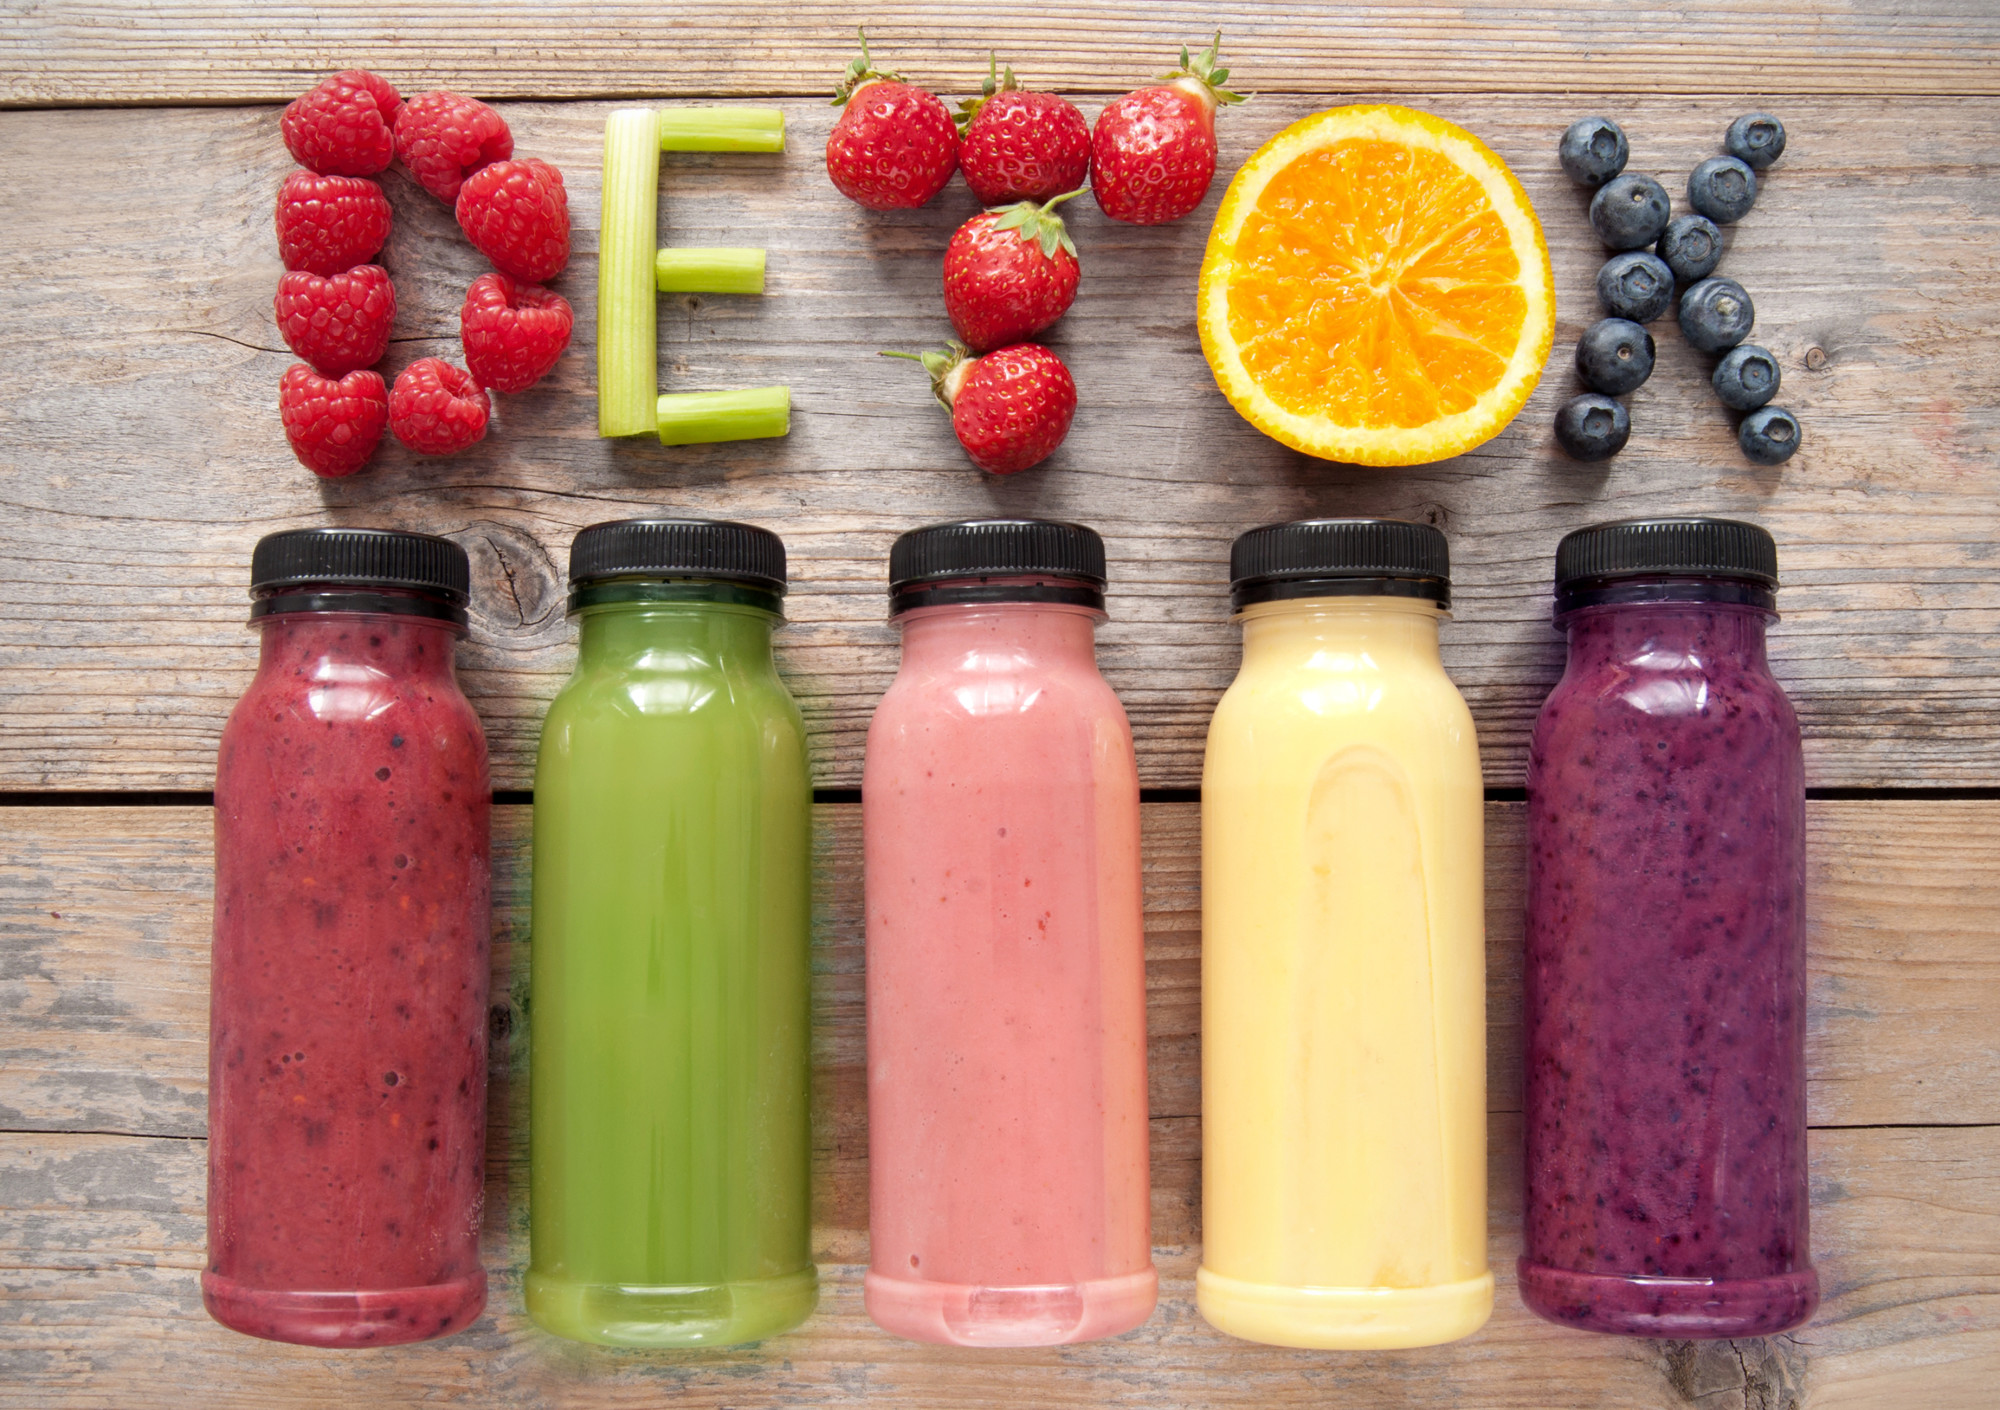 5 Powerful Health Benefits of Detoxing Your Body This Summer